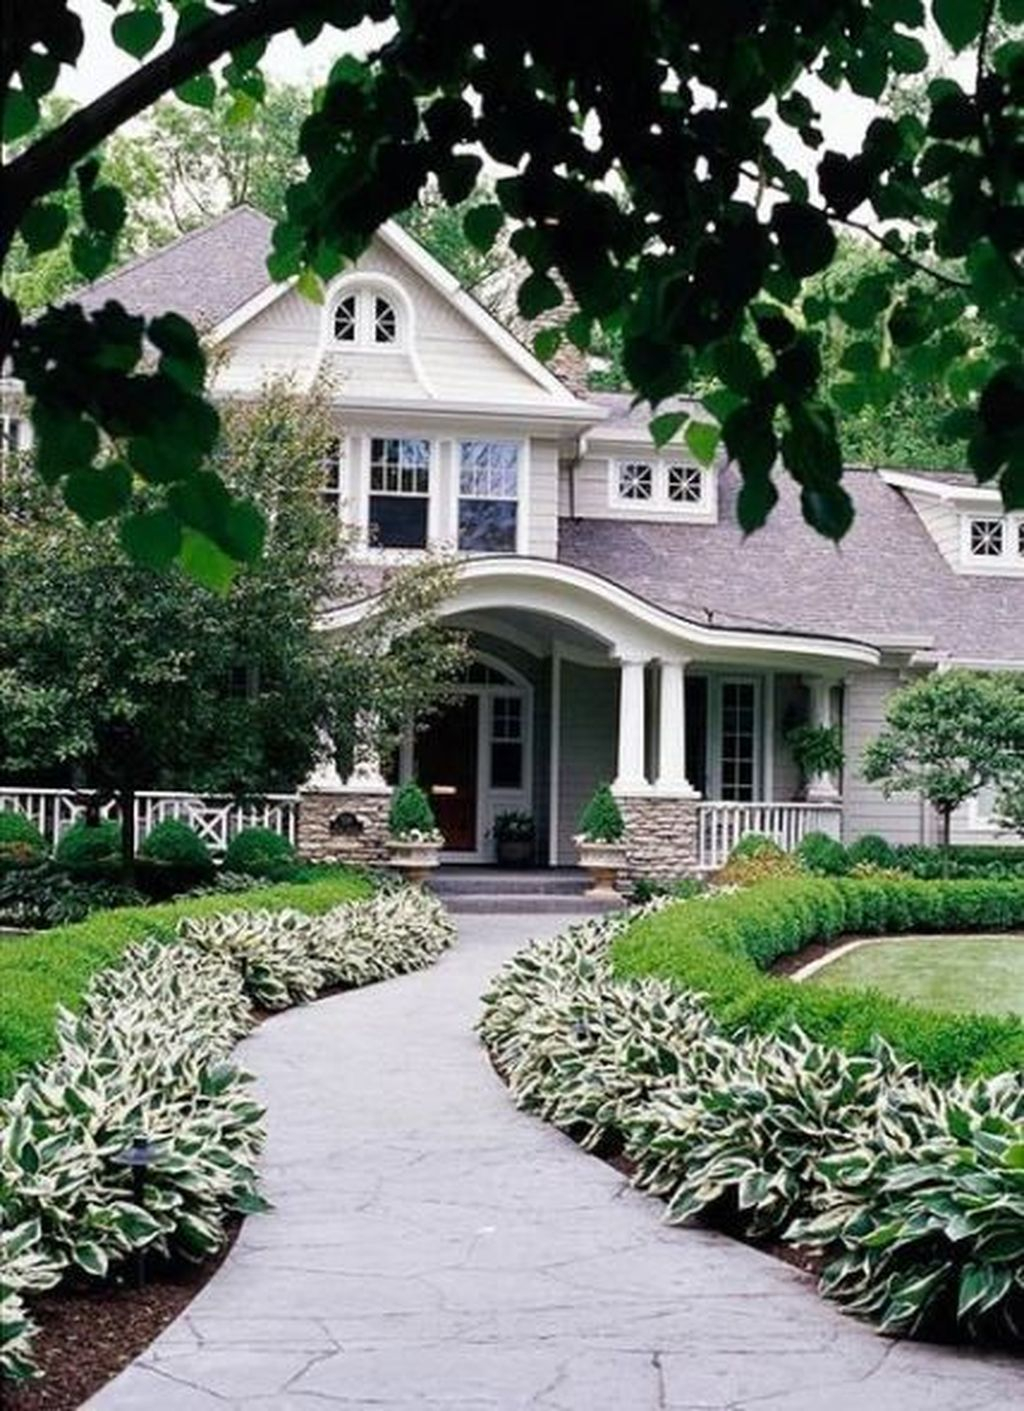 Fabulous Driveway Landscaping Design Ideas For Your Home To Try Asap 13